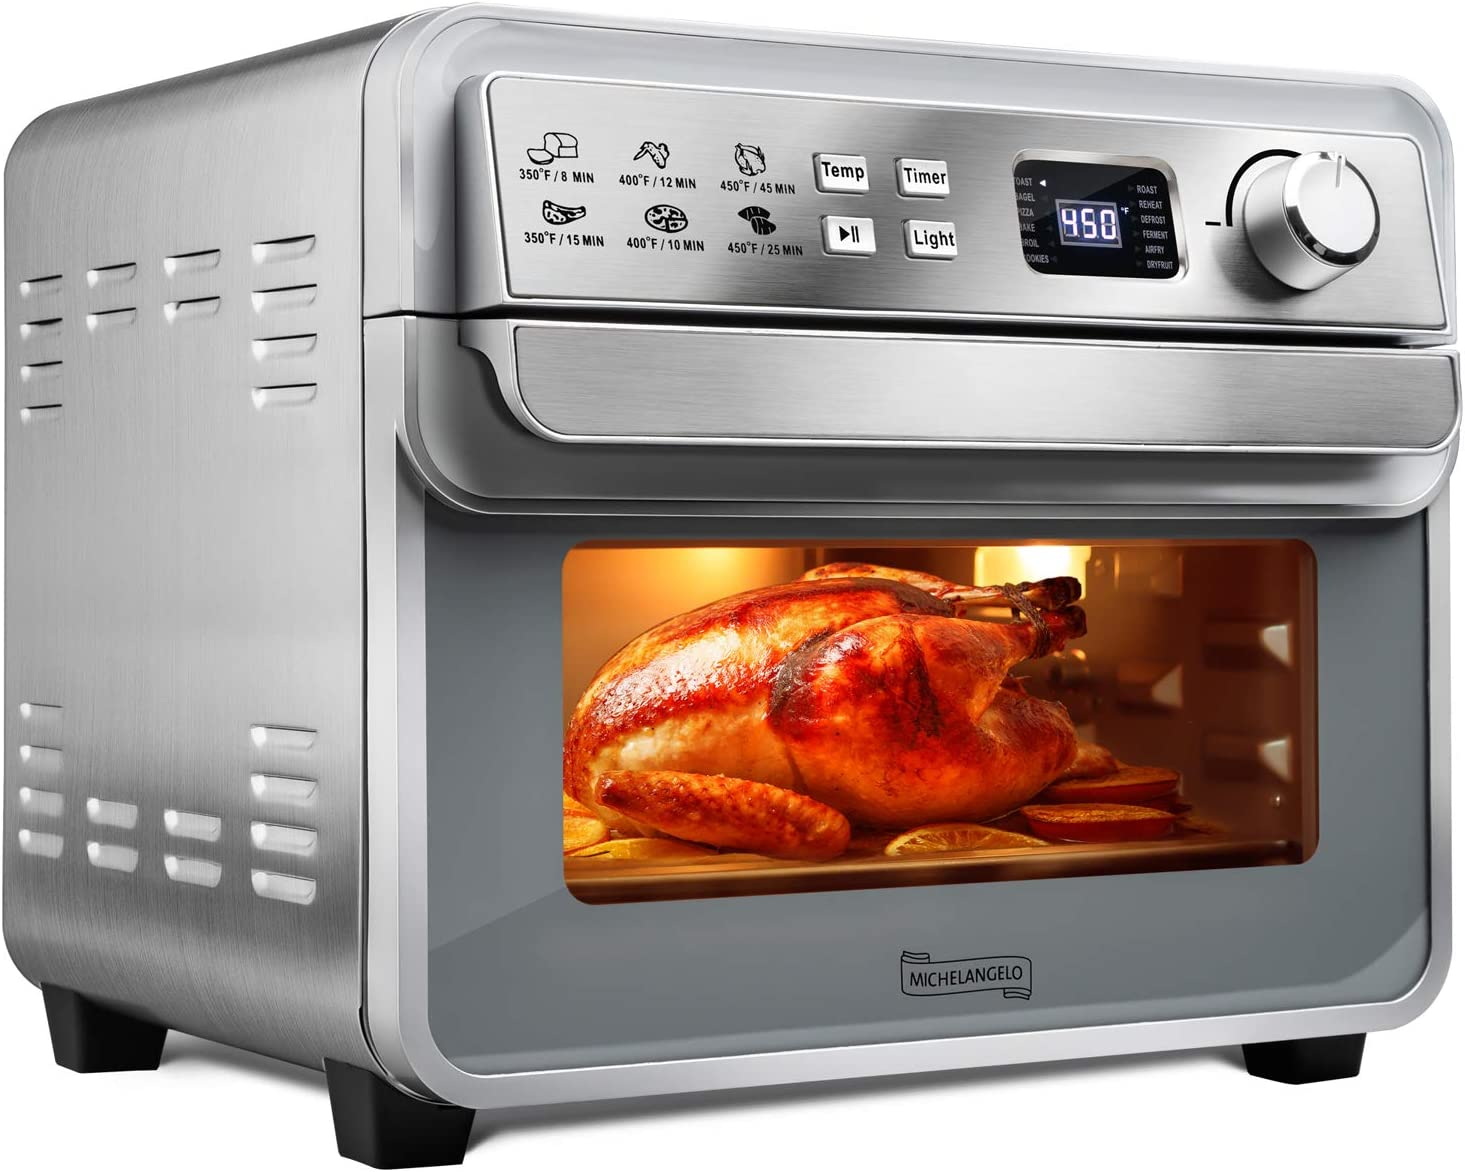 Michelangelo 1700W 23QT 12-in-1 Air Fryer Toaster Oven $99.99 Coupon